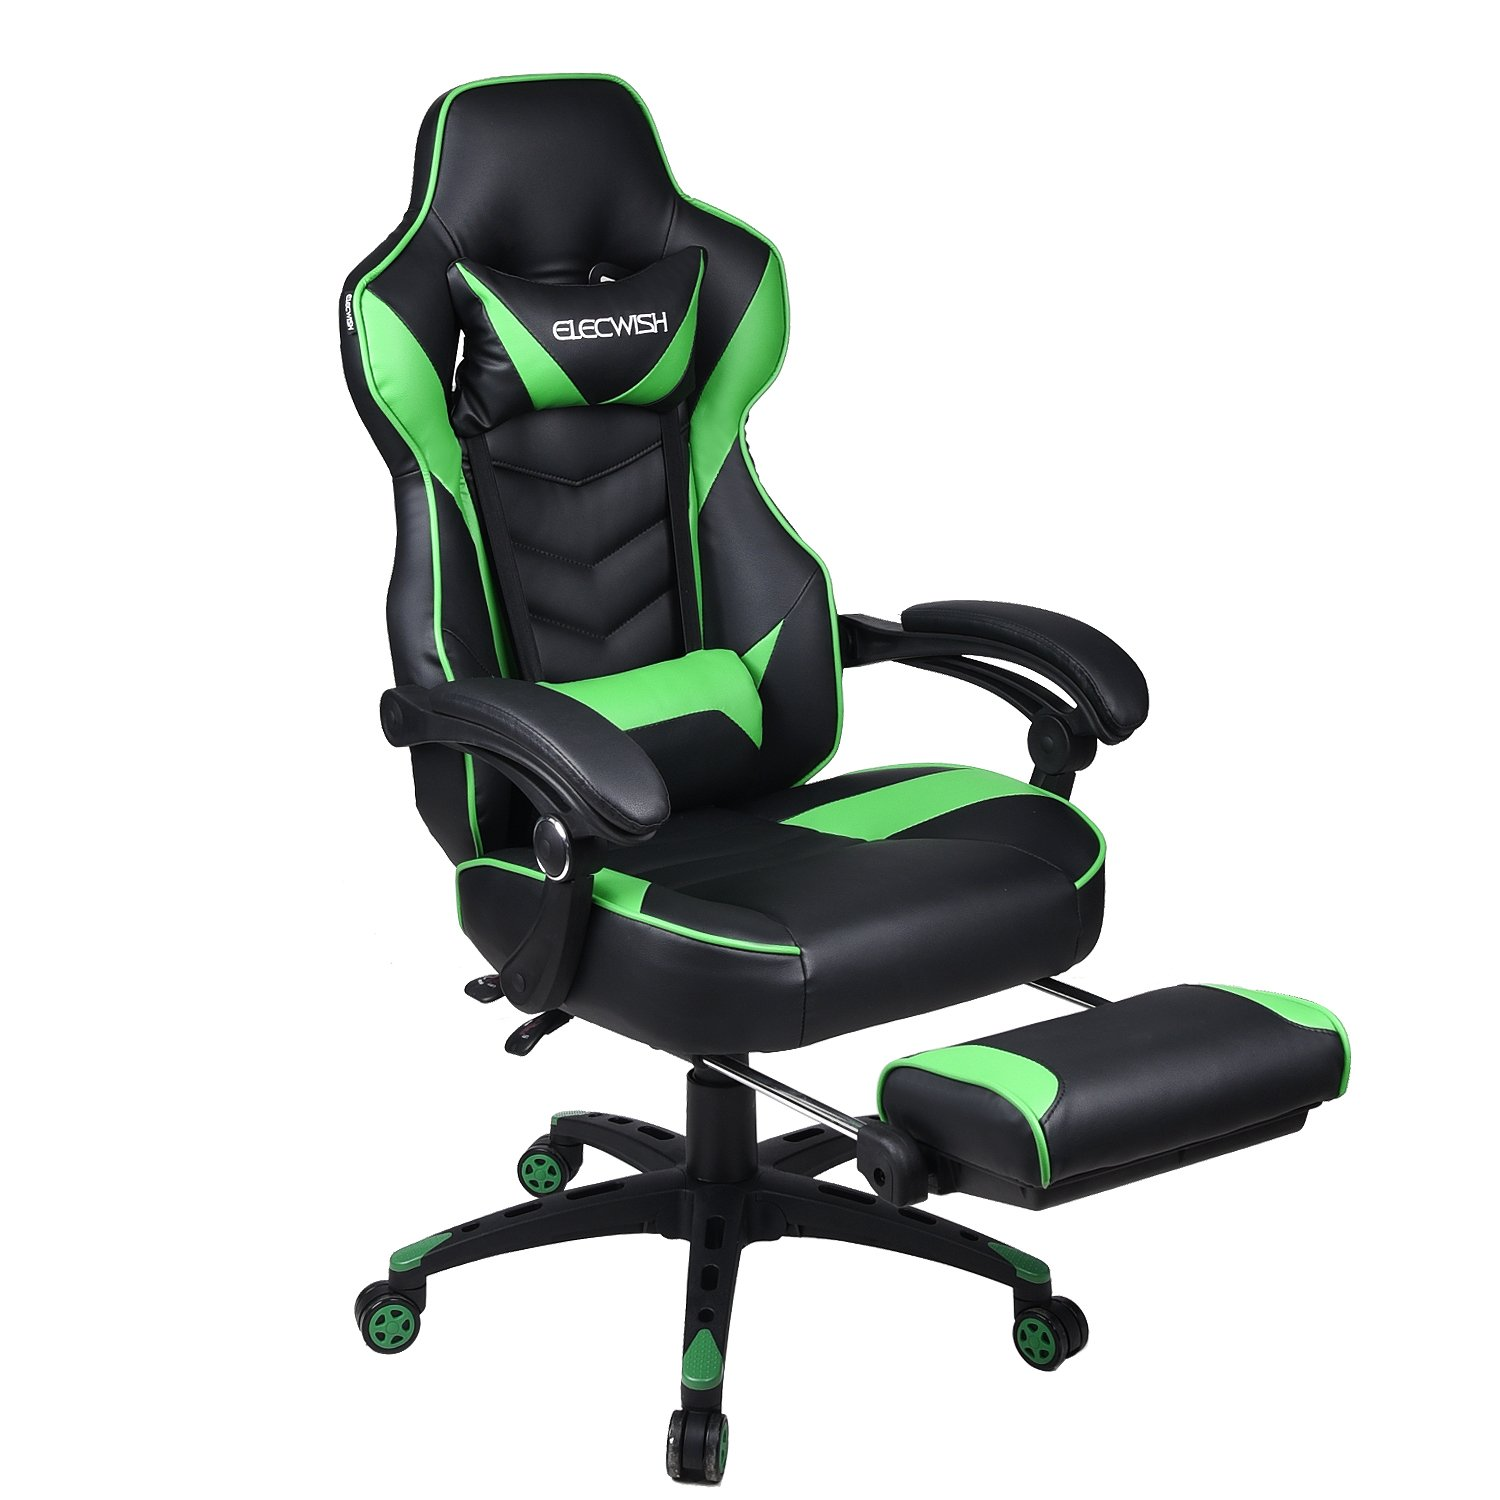 Brilliant Video Gaming Chair Racing Office Reclining Pu Leather High Back Ergonomic Adjustable Swivel Executive Computer Desk Large Size Footrest Headrest Ncnpc Chair Design For Home Ncnpcorg